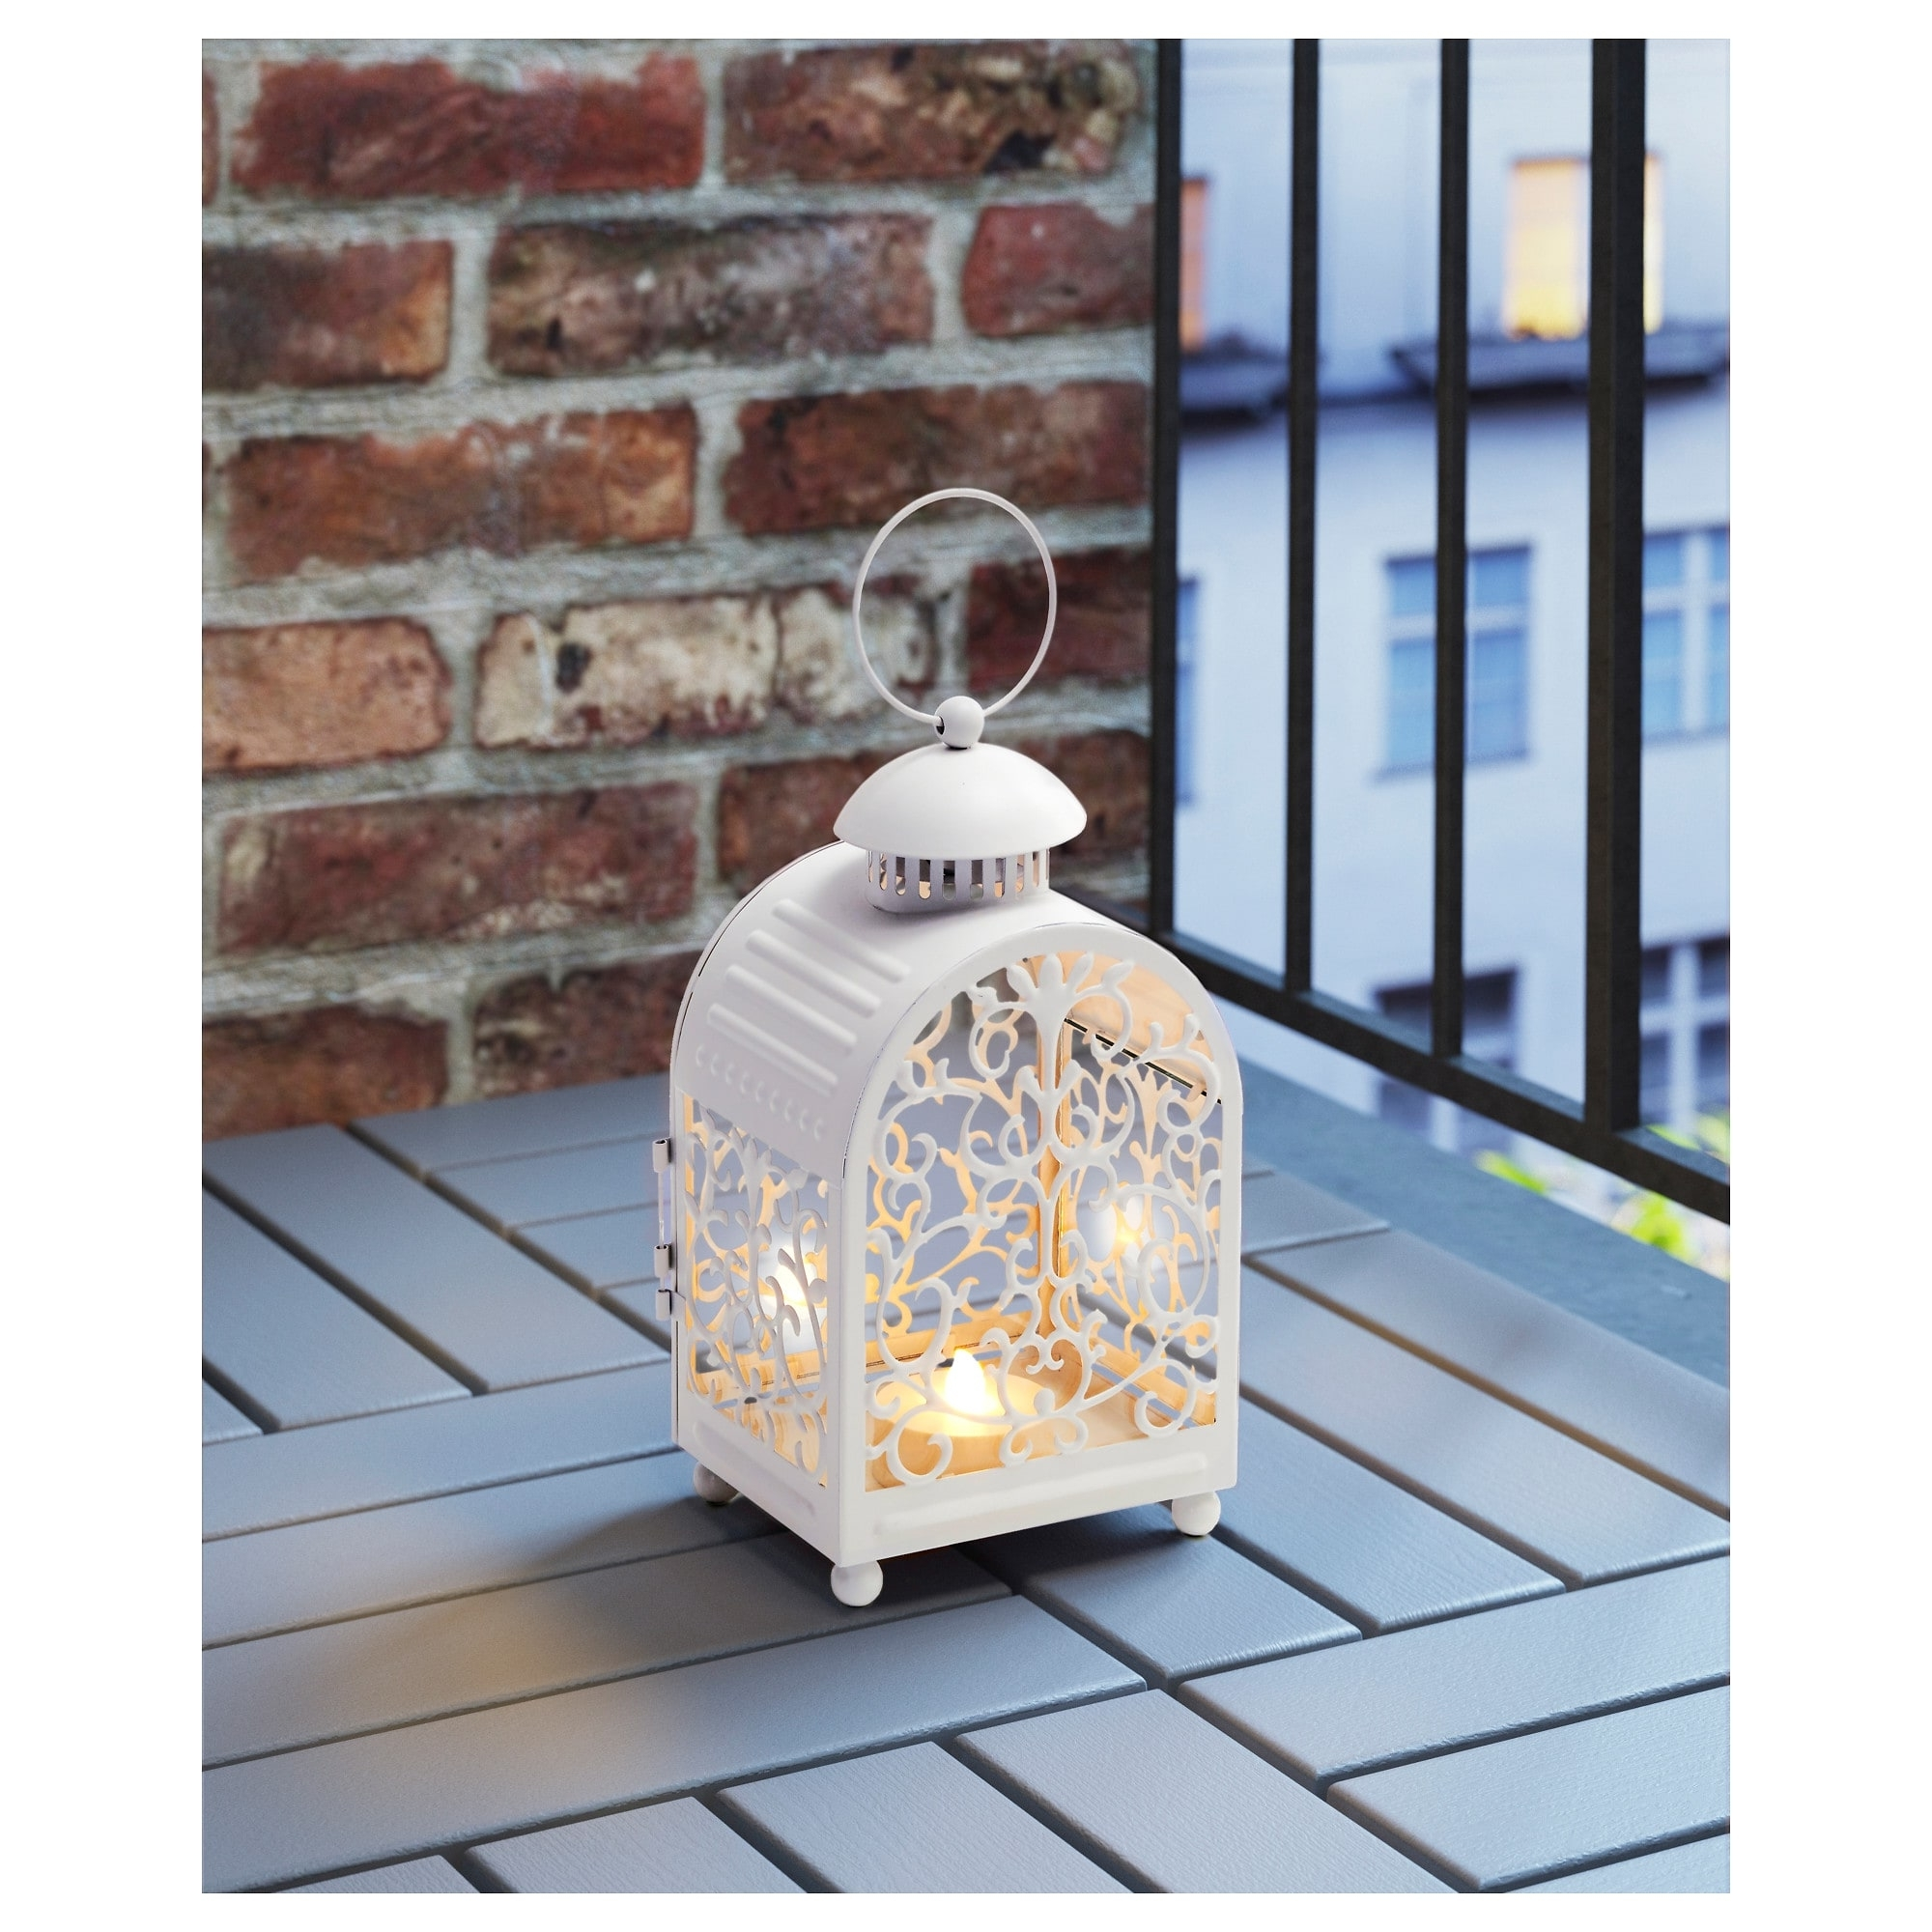 Most Recently Released Gottgöra Lantern For Candle In Metal Cup In/outdoor White 26 Cm – Ikea Inside Ikea Outdoor Lanterns (View 16 of 20)